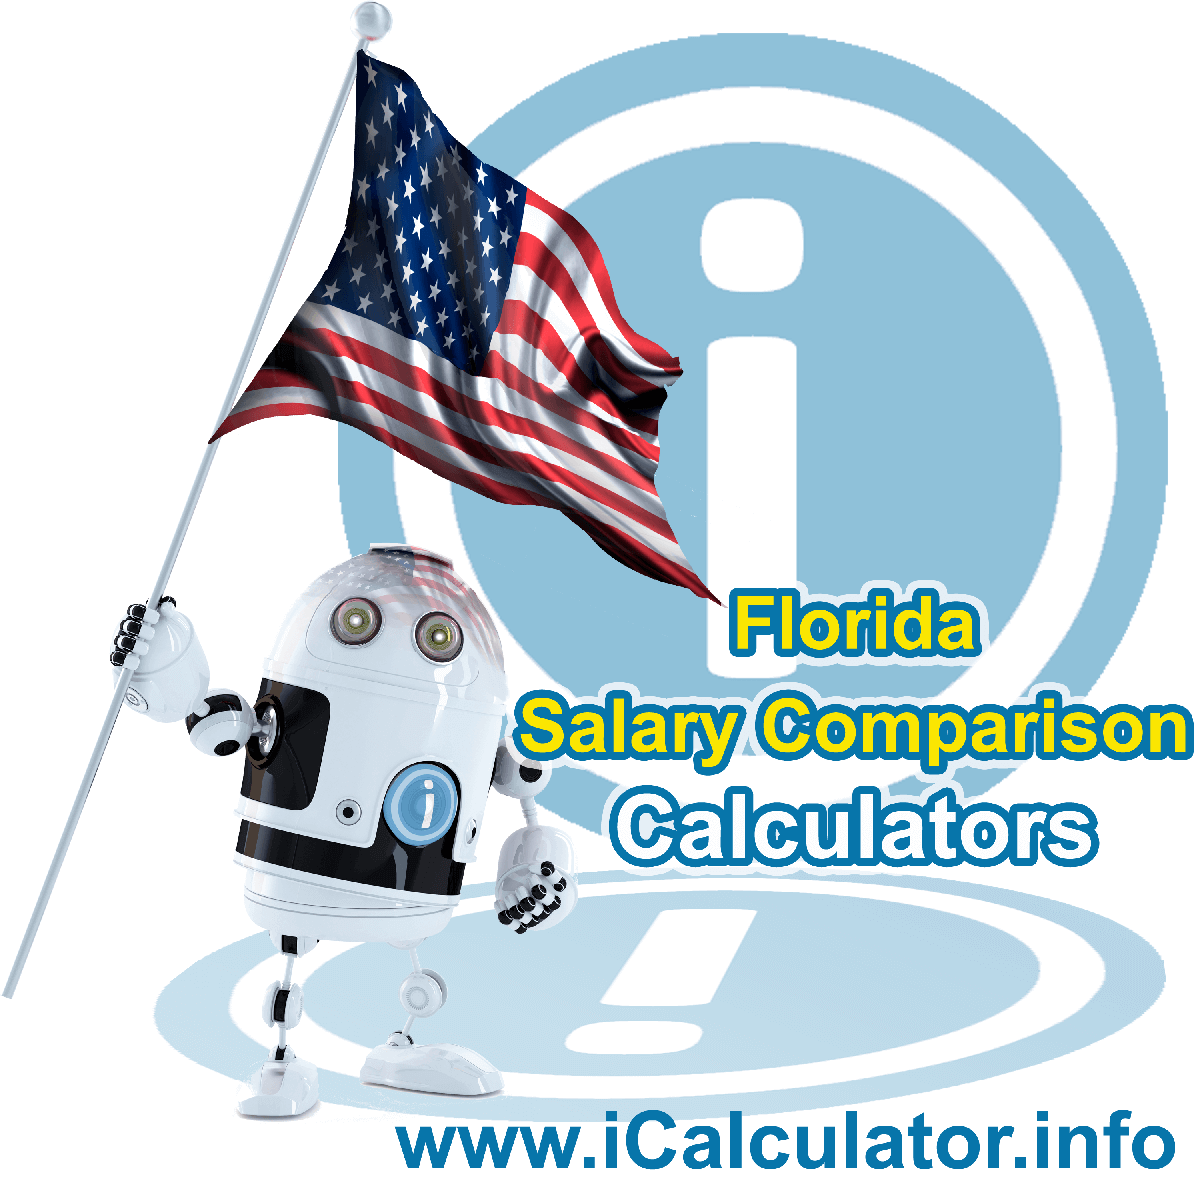 Florida Salary Comparison Calculator 2019 | iCalculator | The Florida Salary Comparison Calculator allows you to quickly calculate and compare upto 6 salaries in Florida or between other states for the 2019 tax year and historical tax years. Its an excellent tool for jobseekers, pay raise comparison and comparison of salaries between different US States